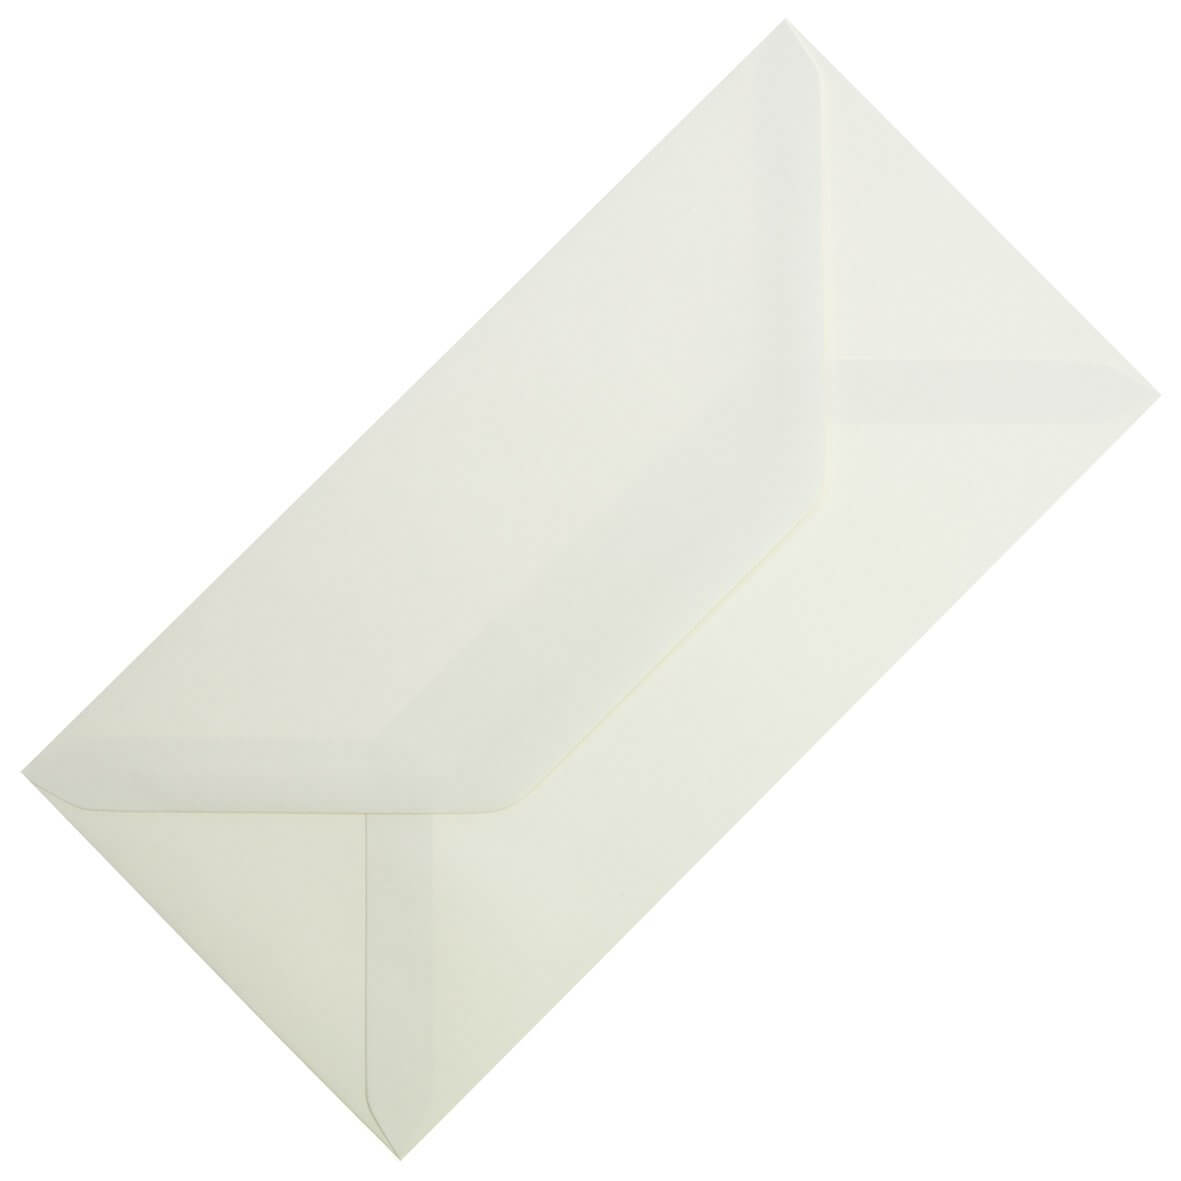 Ivory Sparkle DL Envelope Large Tall